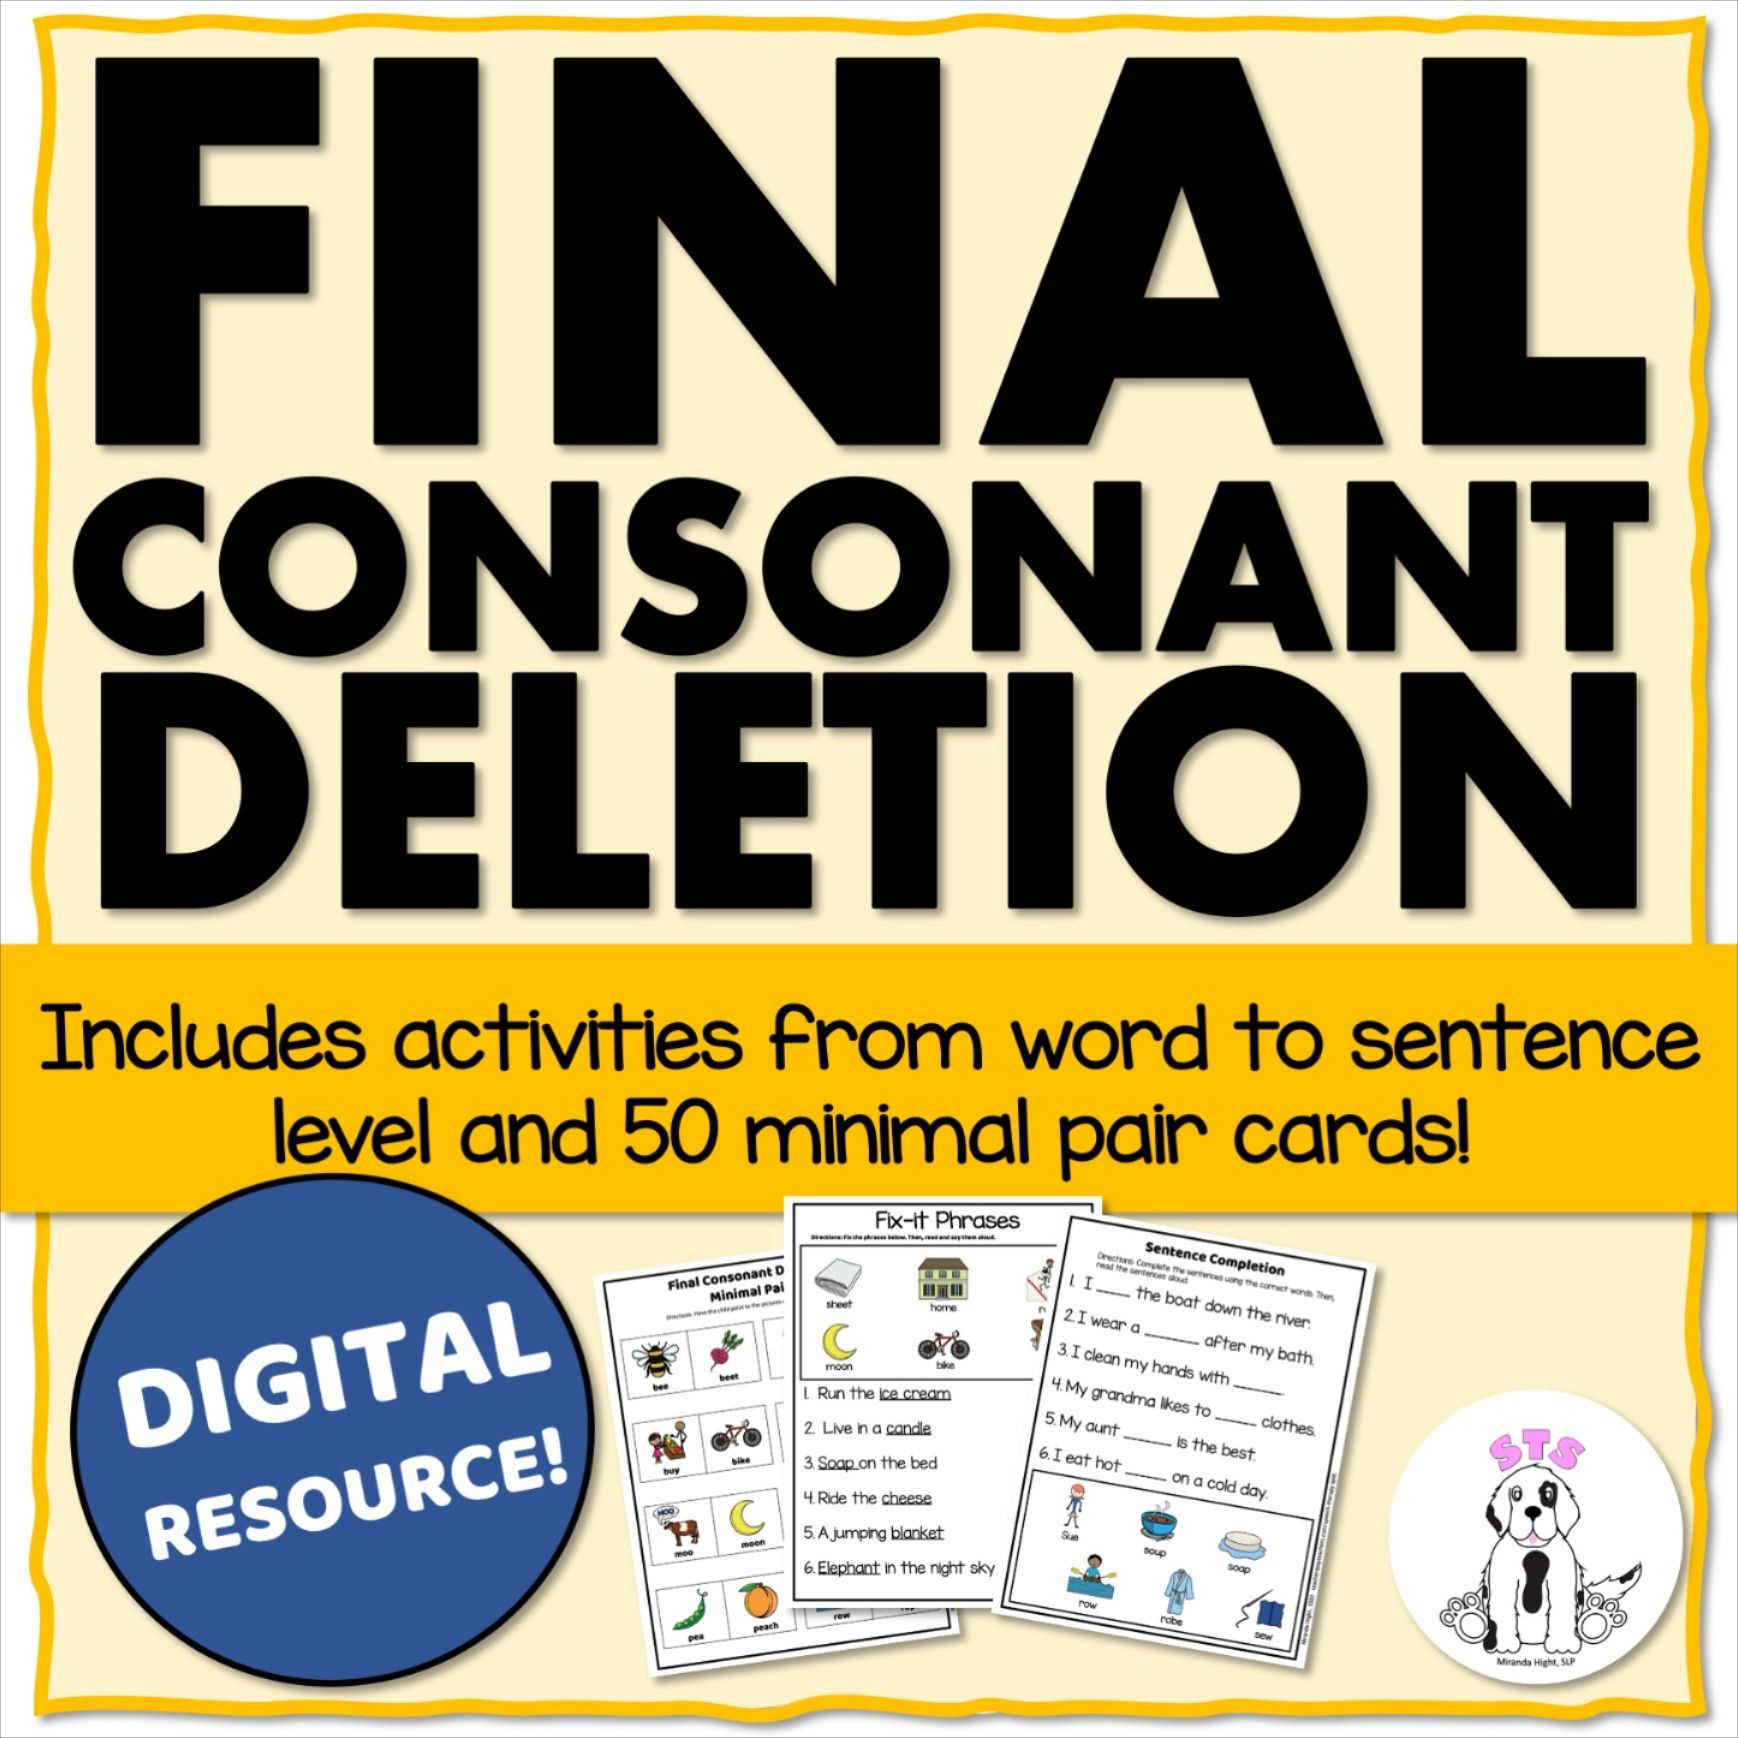 Final Consonant Deletion For Speech Therapy Using Minimal